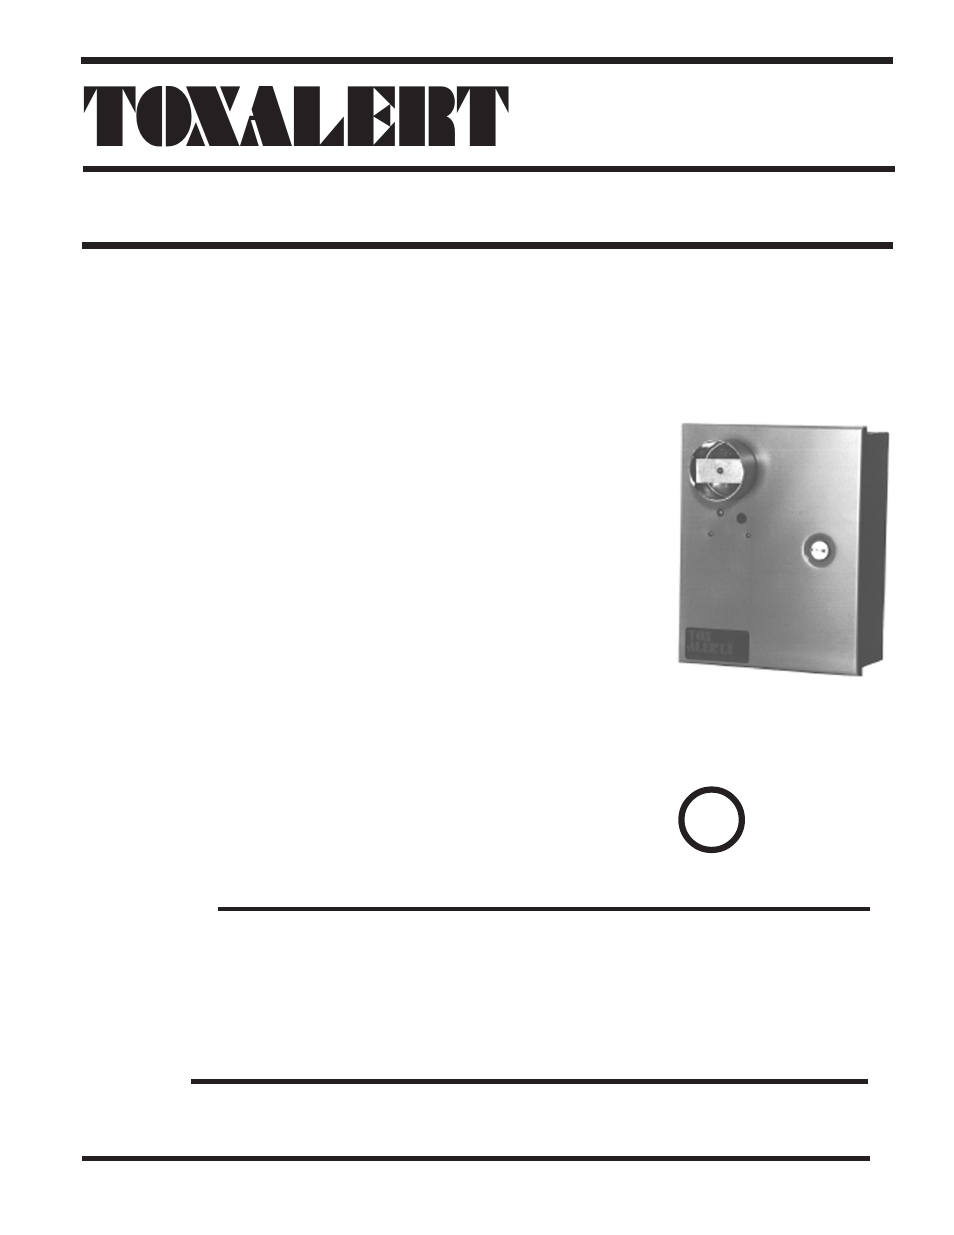 Toxalert Gvu 1d User Manual 4 Pages Also For 1c 1b 4541 Datasheet 1a 1